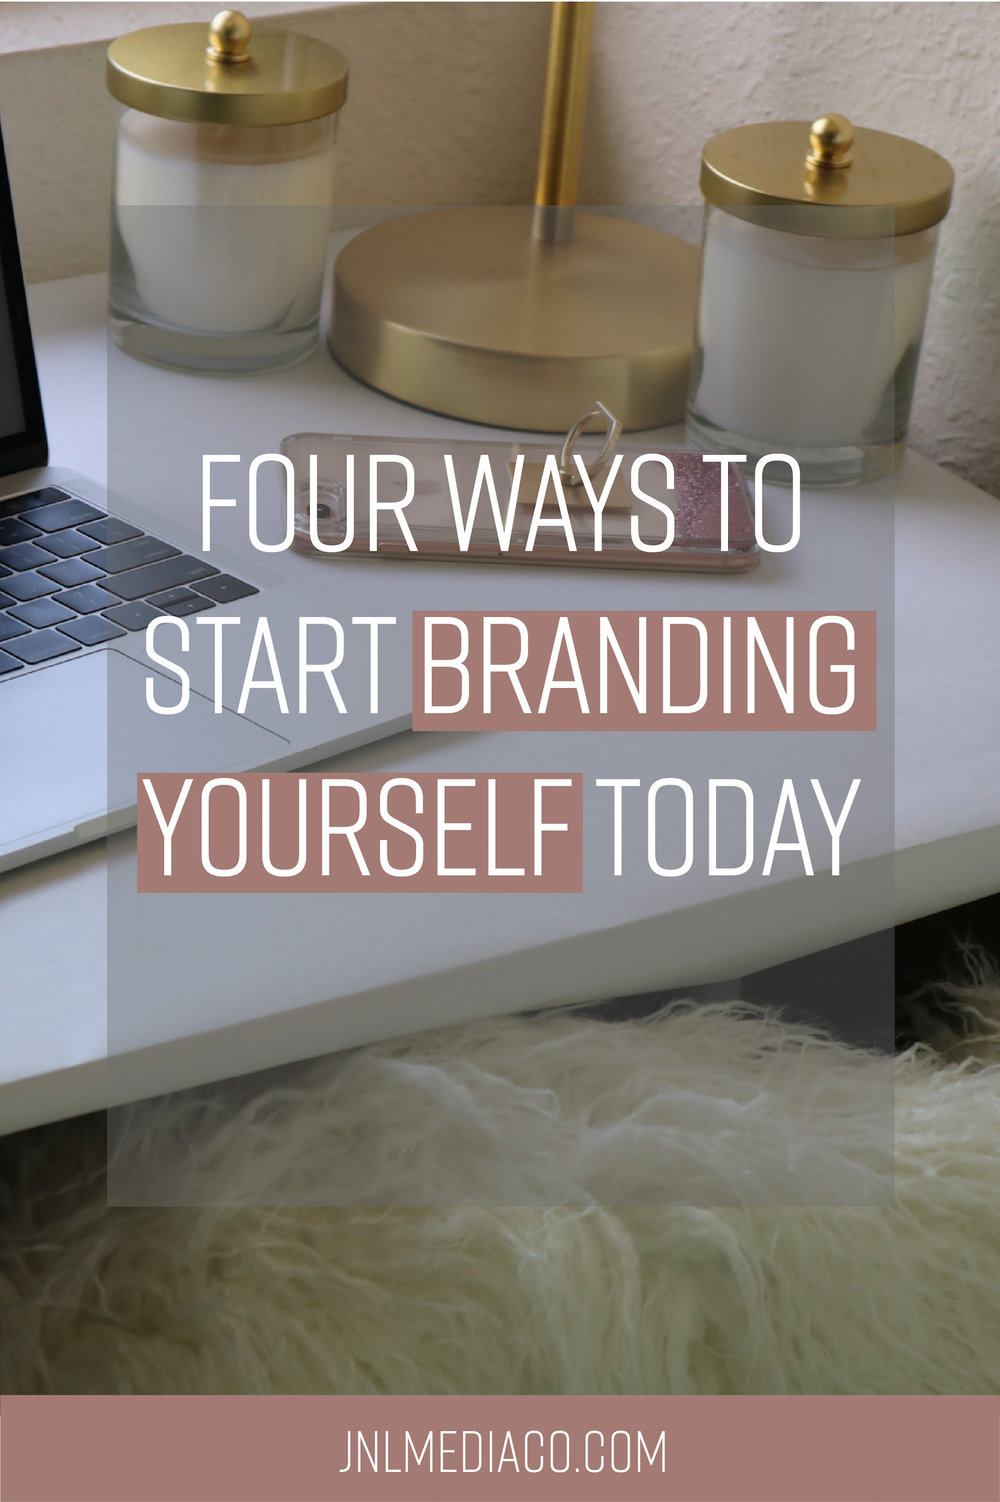 """The word branding comes up in every other sentence nowadays but how do you actually go about  """"branding yourself"""".  Well, first of all, you have to understand what branding really is. I like to think of your brand as both intangible and tangible... Read the rest of the post to find out the four ways to start branding yourself today."""